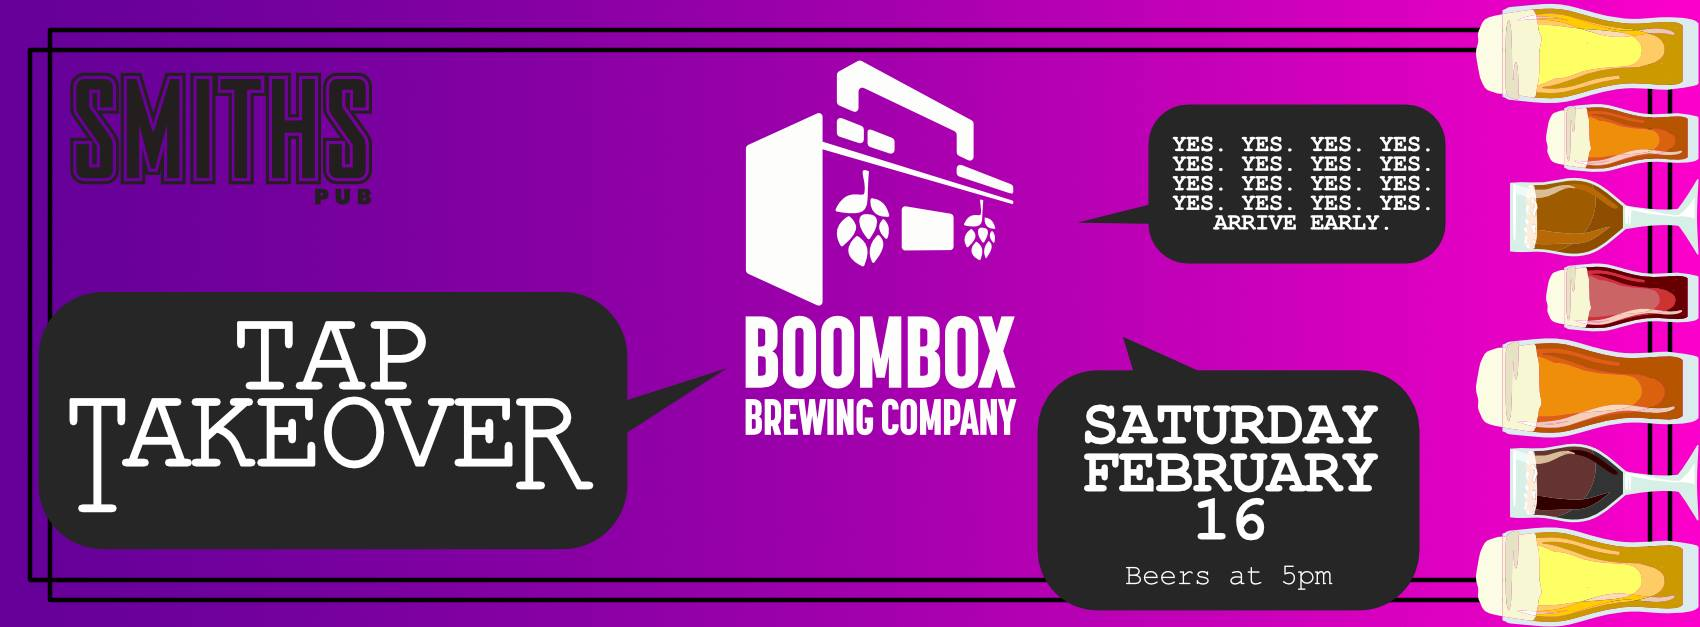 Boombox Brewing Tap Takeover